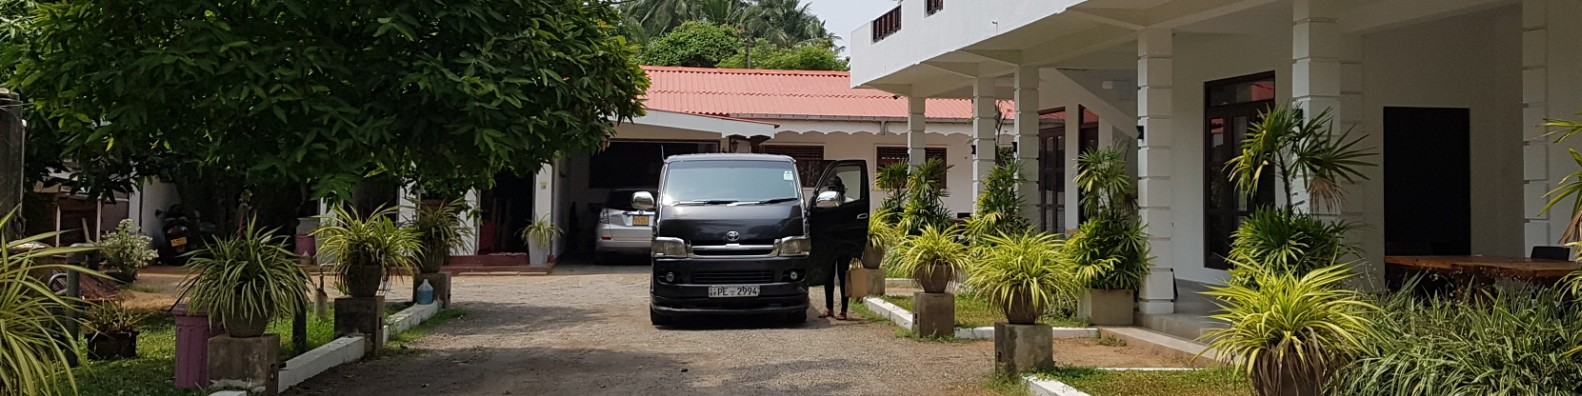 Grand Holiday Home (Airport), Negombo, Gampaha District, Western Region